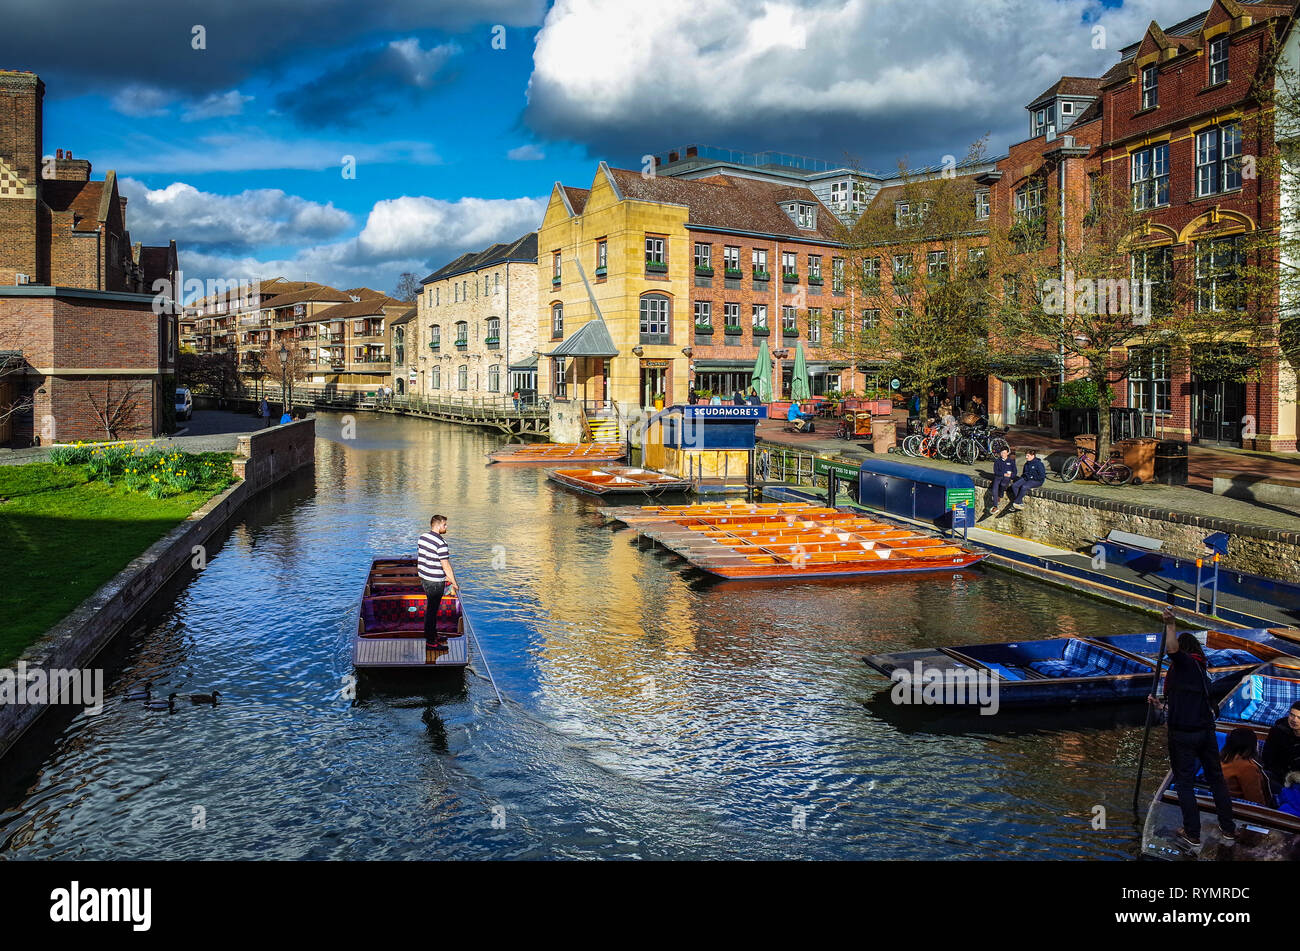 Punting in Cambridge - River Cam at Quayside in central Cambridge - Stock Image